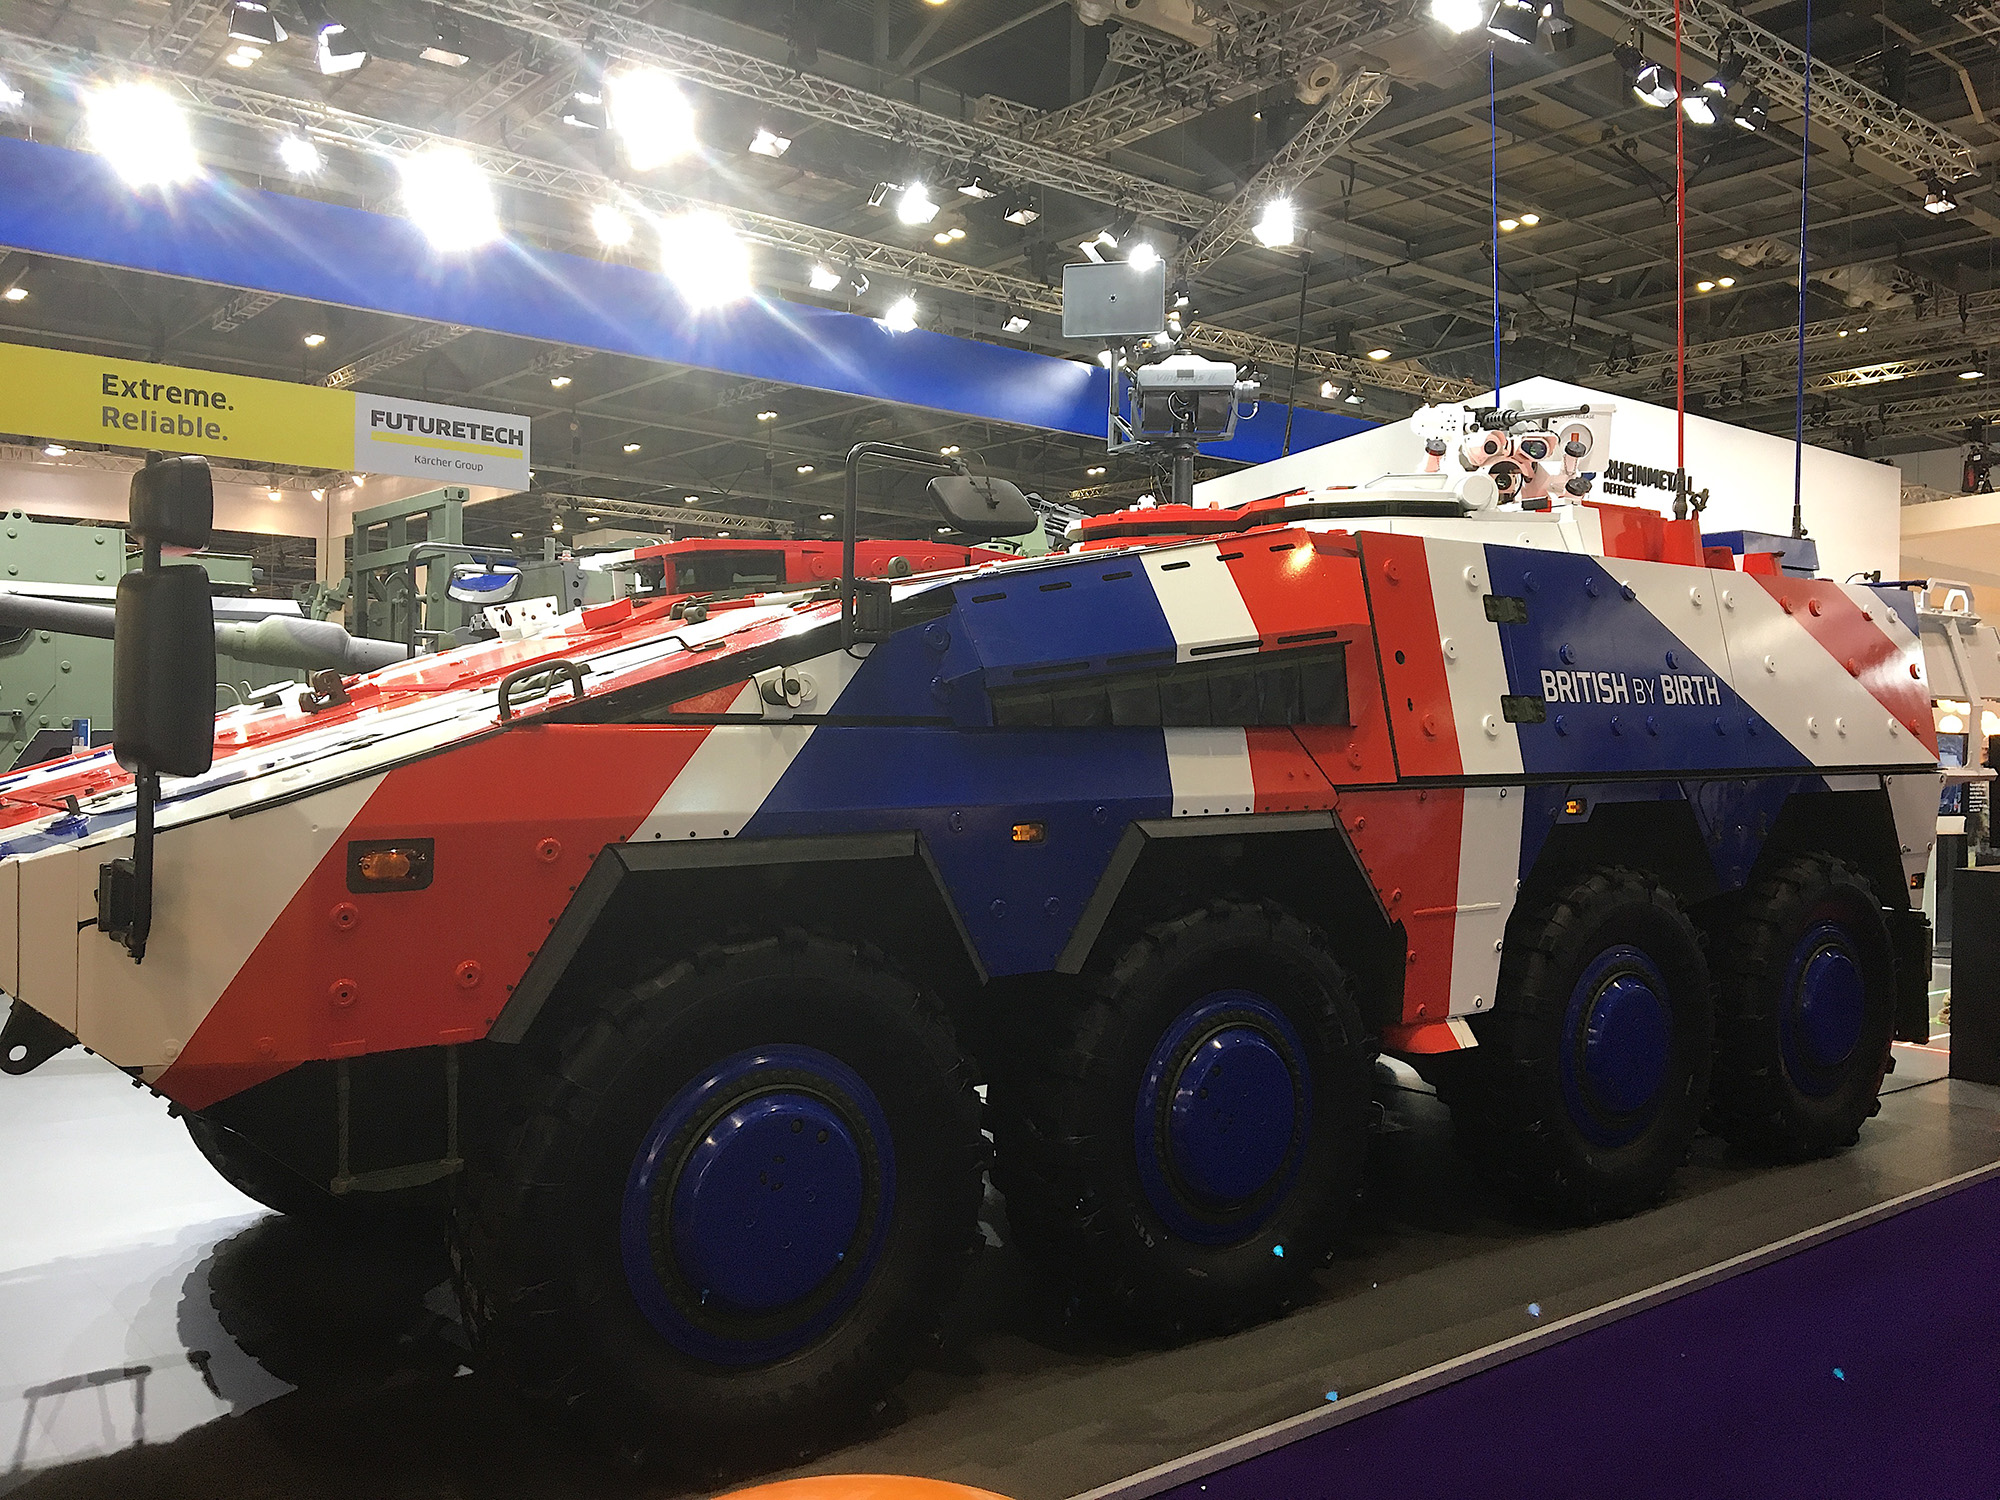 'BRITISH BY BIRTH': a tank on display at the DSEI international arms fair in London, Britain, 12 September 2017. (Photo: Matt Kennard)